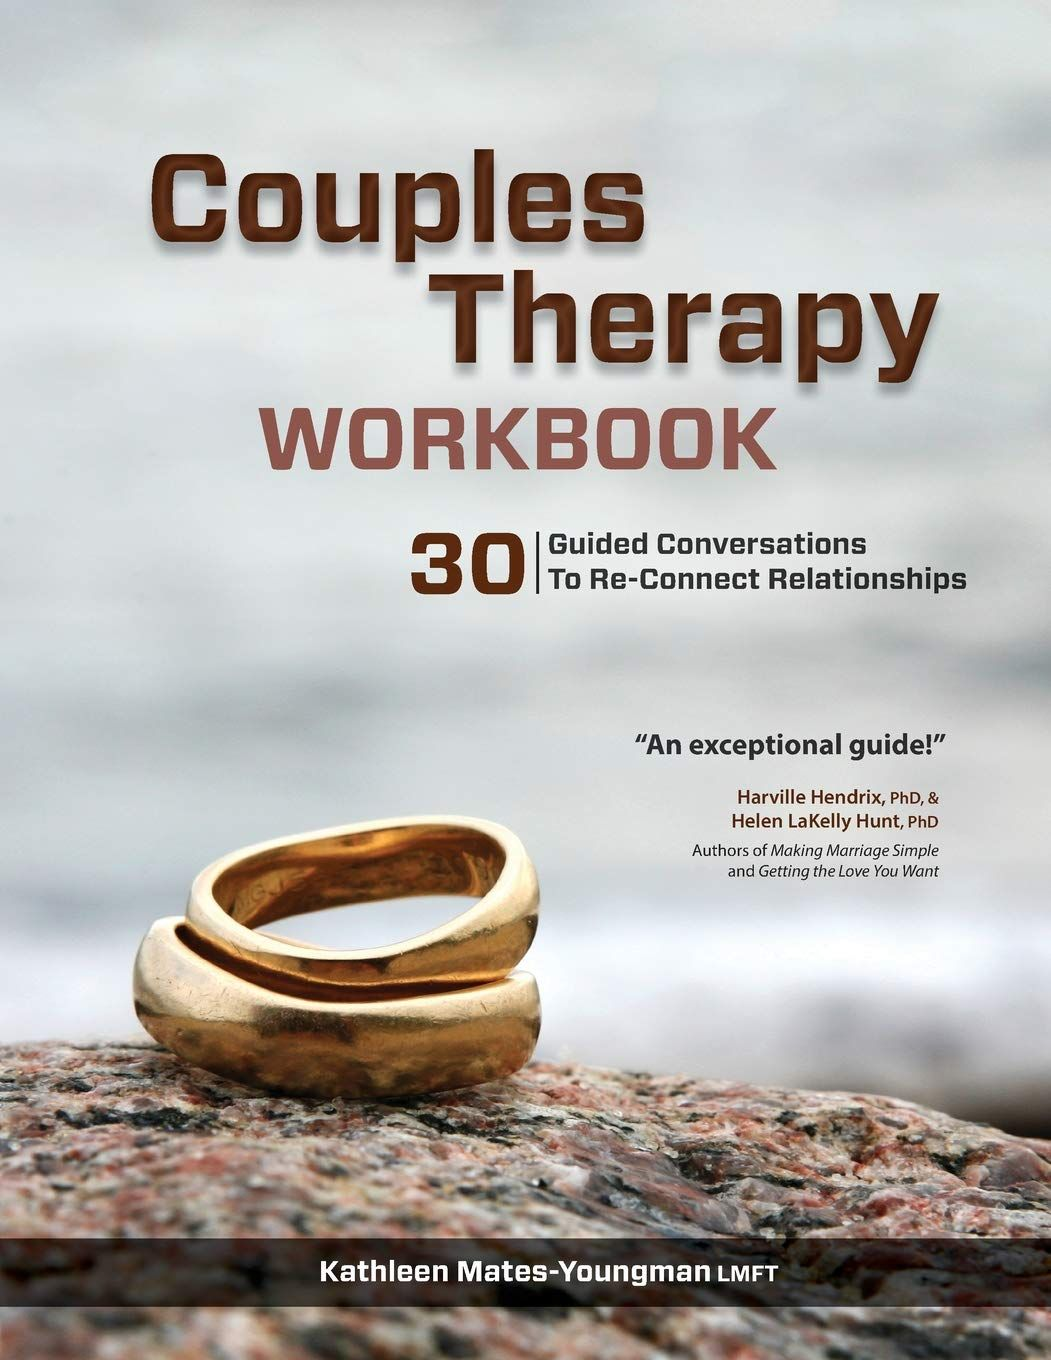 Annotation Couples Therapy Workbook Is A Series Of Guided